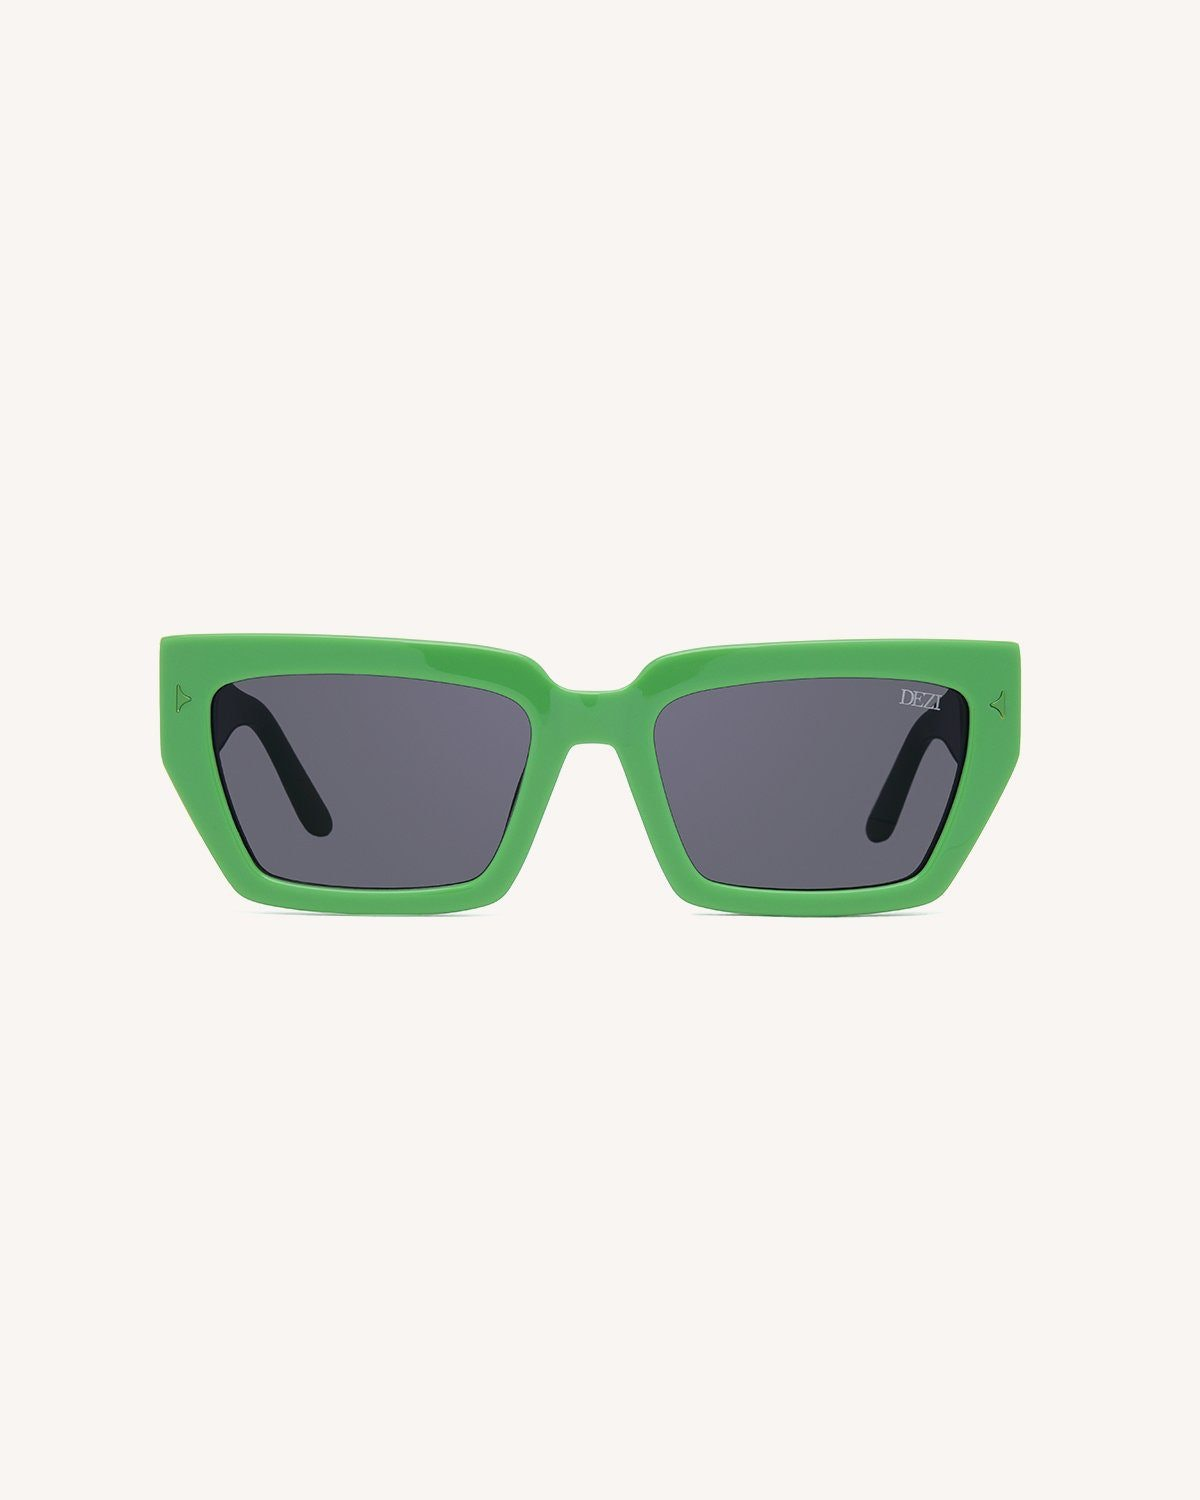 Limited edition Switch sunglasses in Green from DEZI.